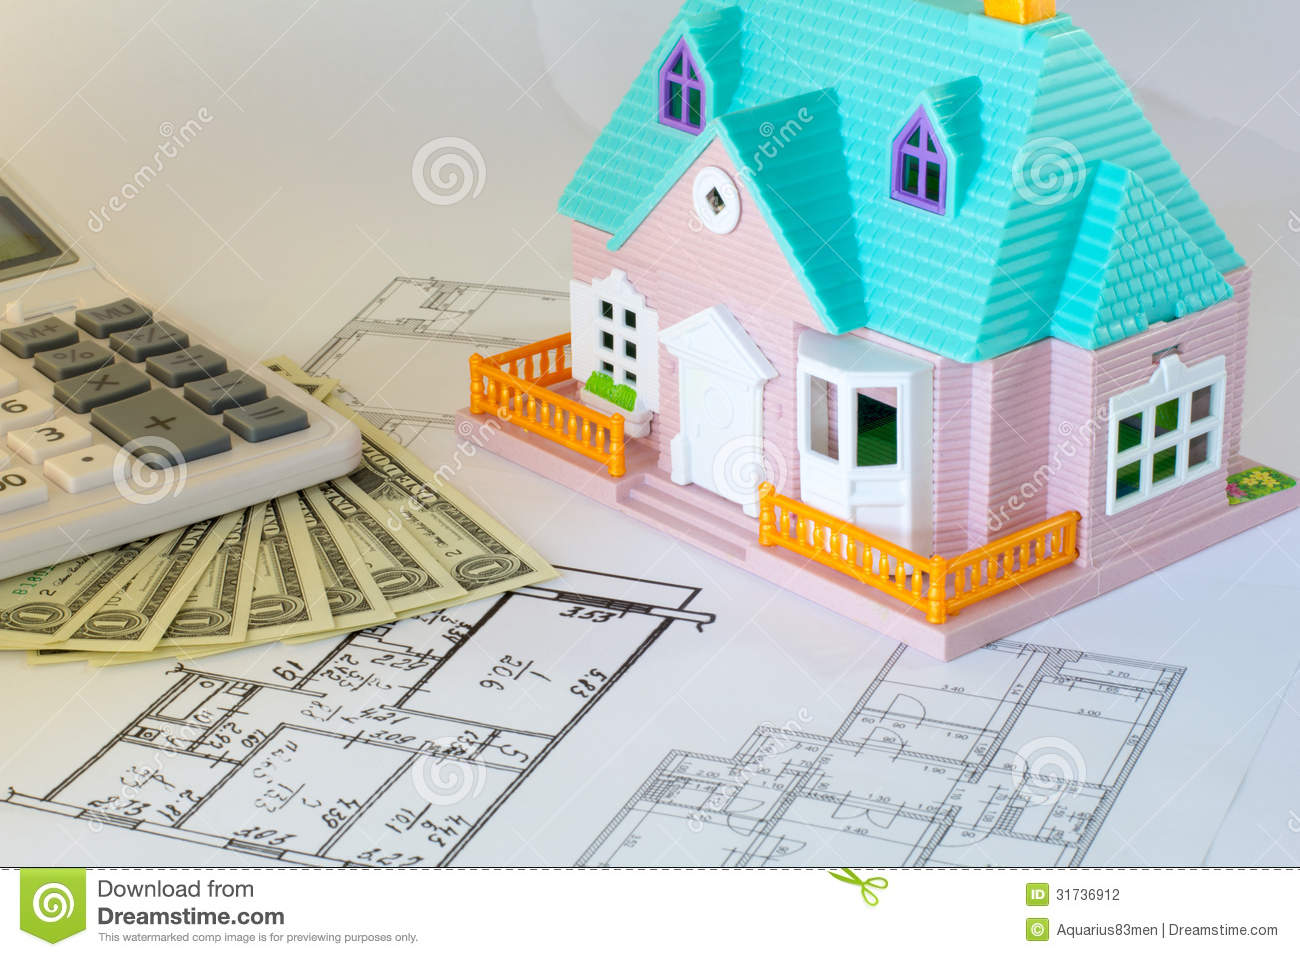 Plan to build a house stock photography image 31736912 for Build a house calculator free